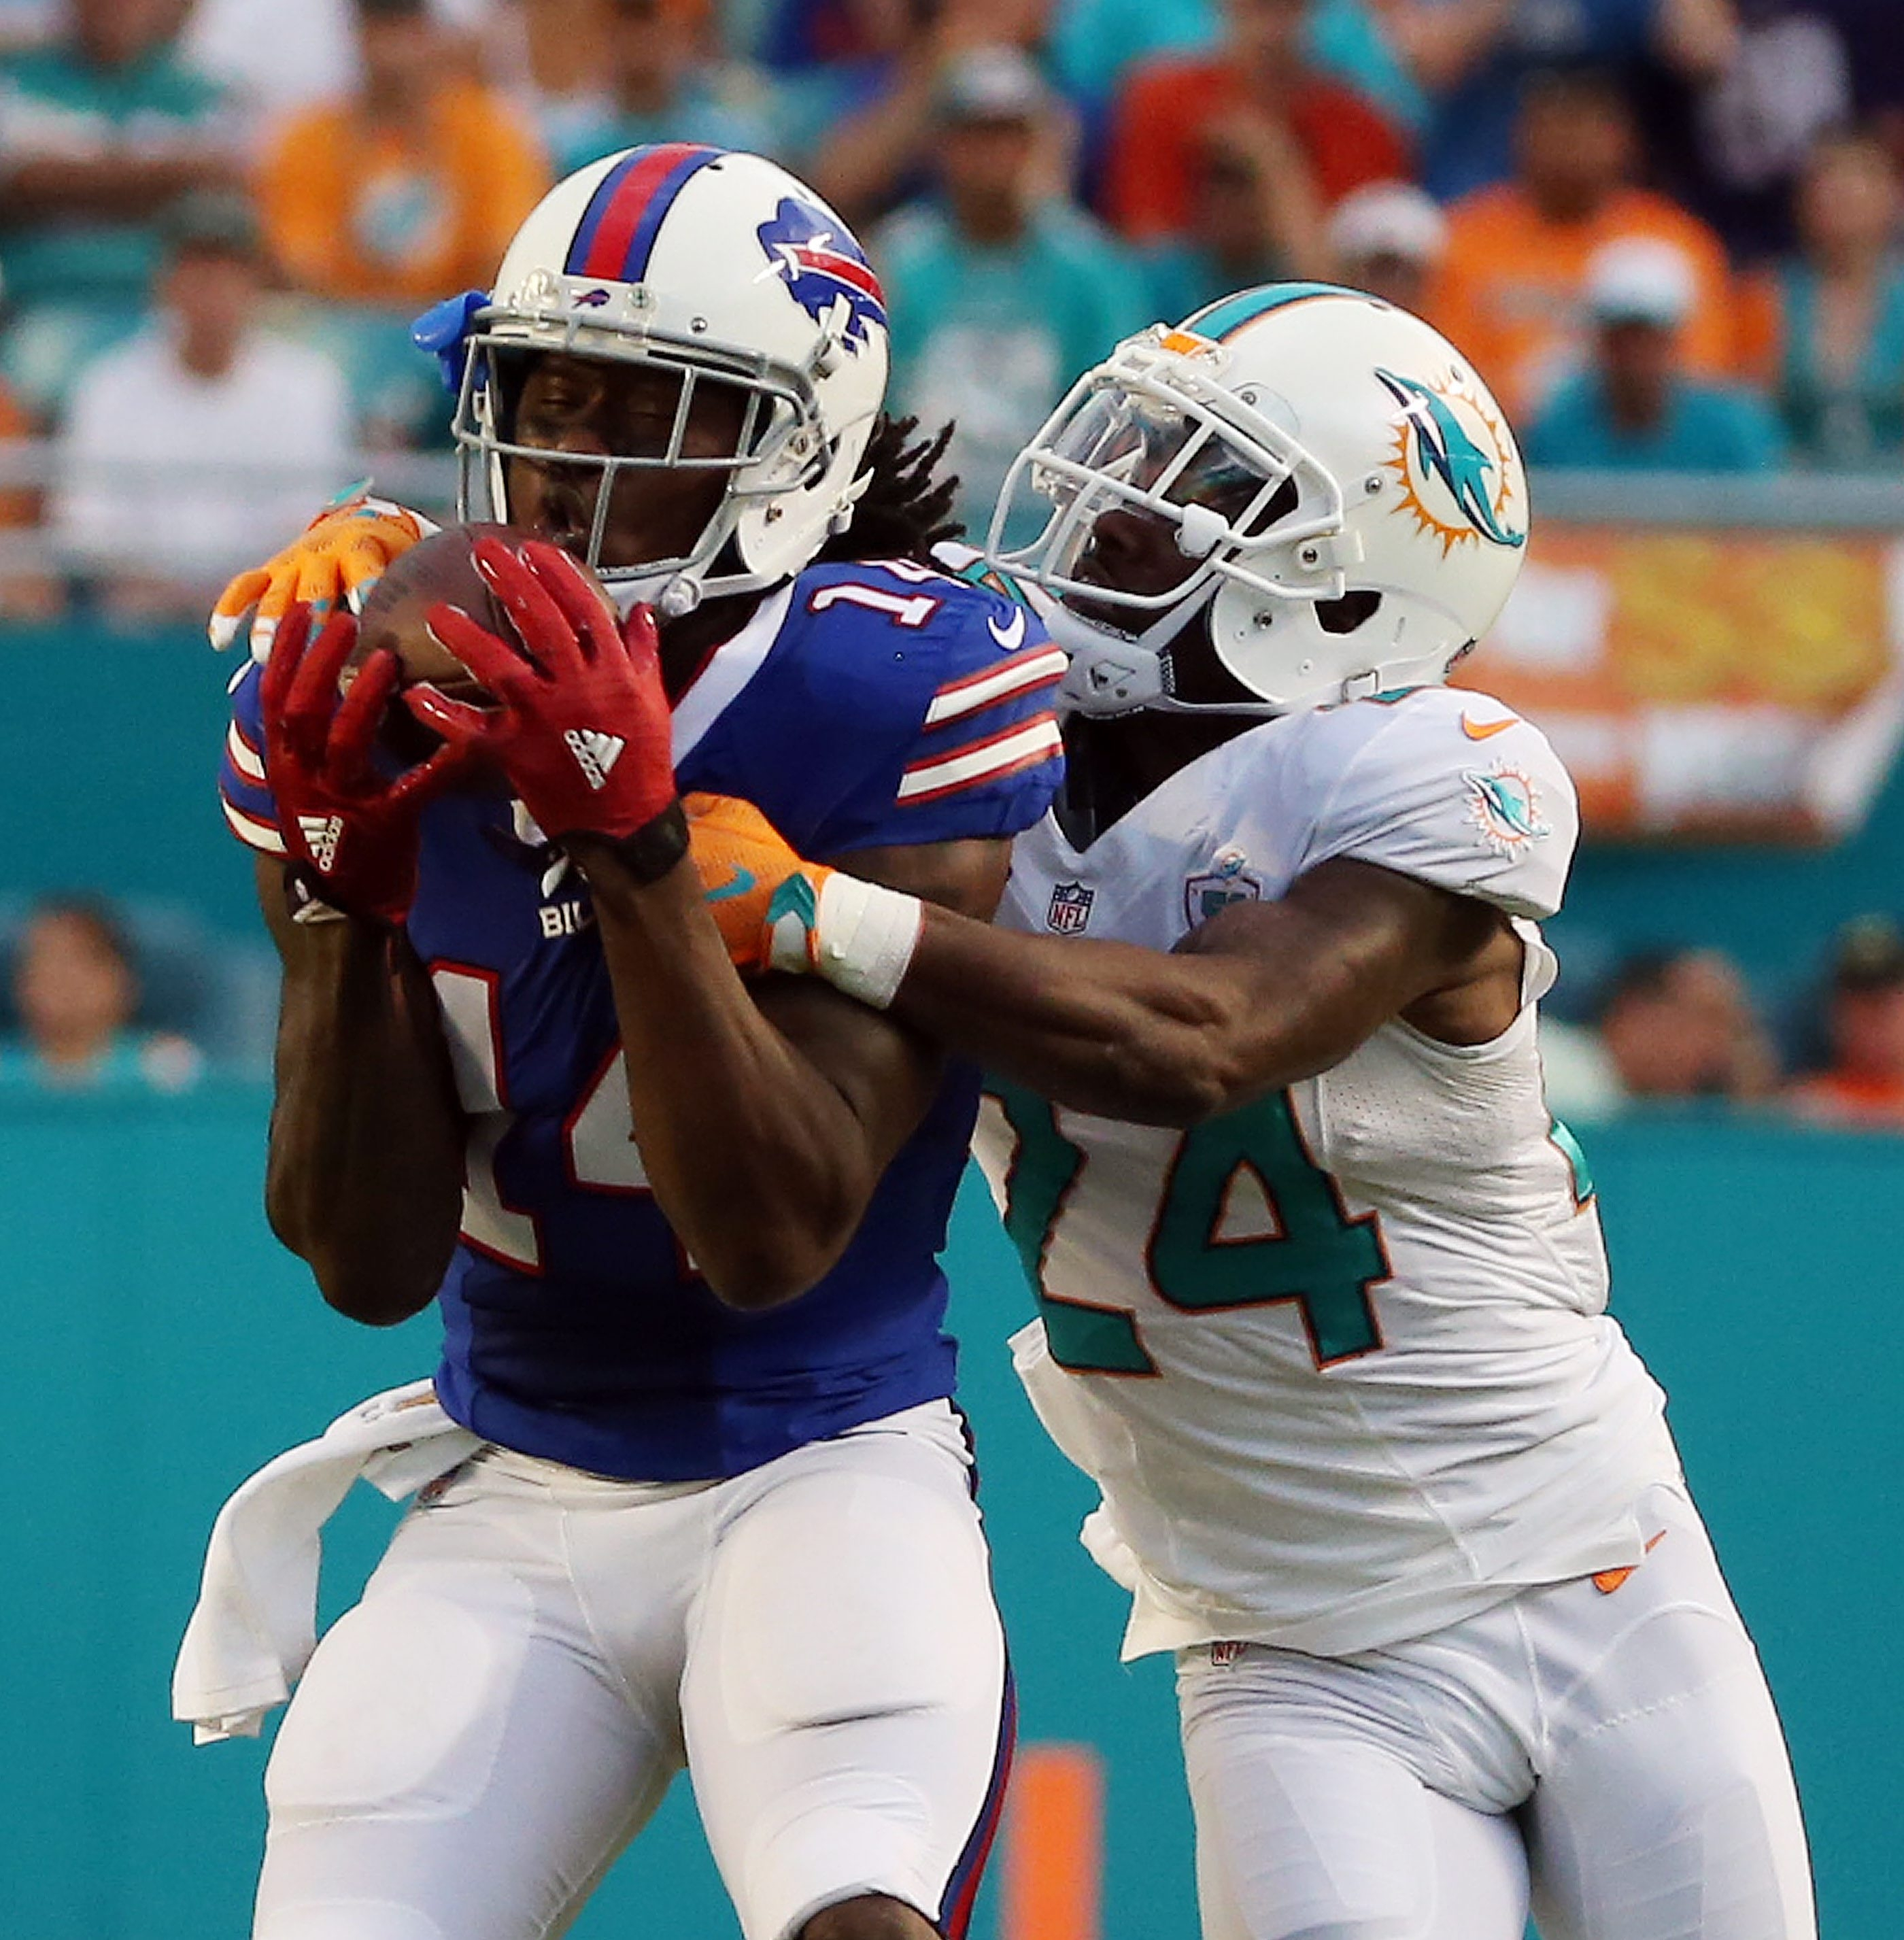 Bills receiver Sammy Watkins has a calf issue, rookie guard John Miller is battling a groin injury and running back LeSean McCoy is dealing with a nagging hamstring  injury.